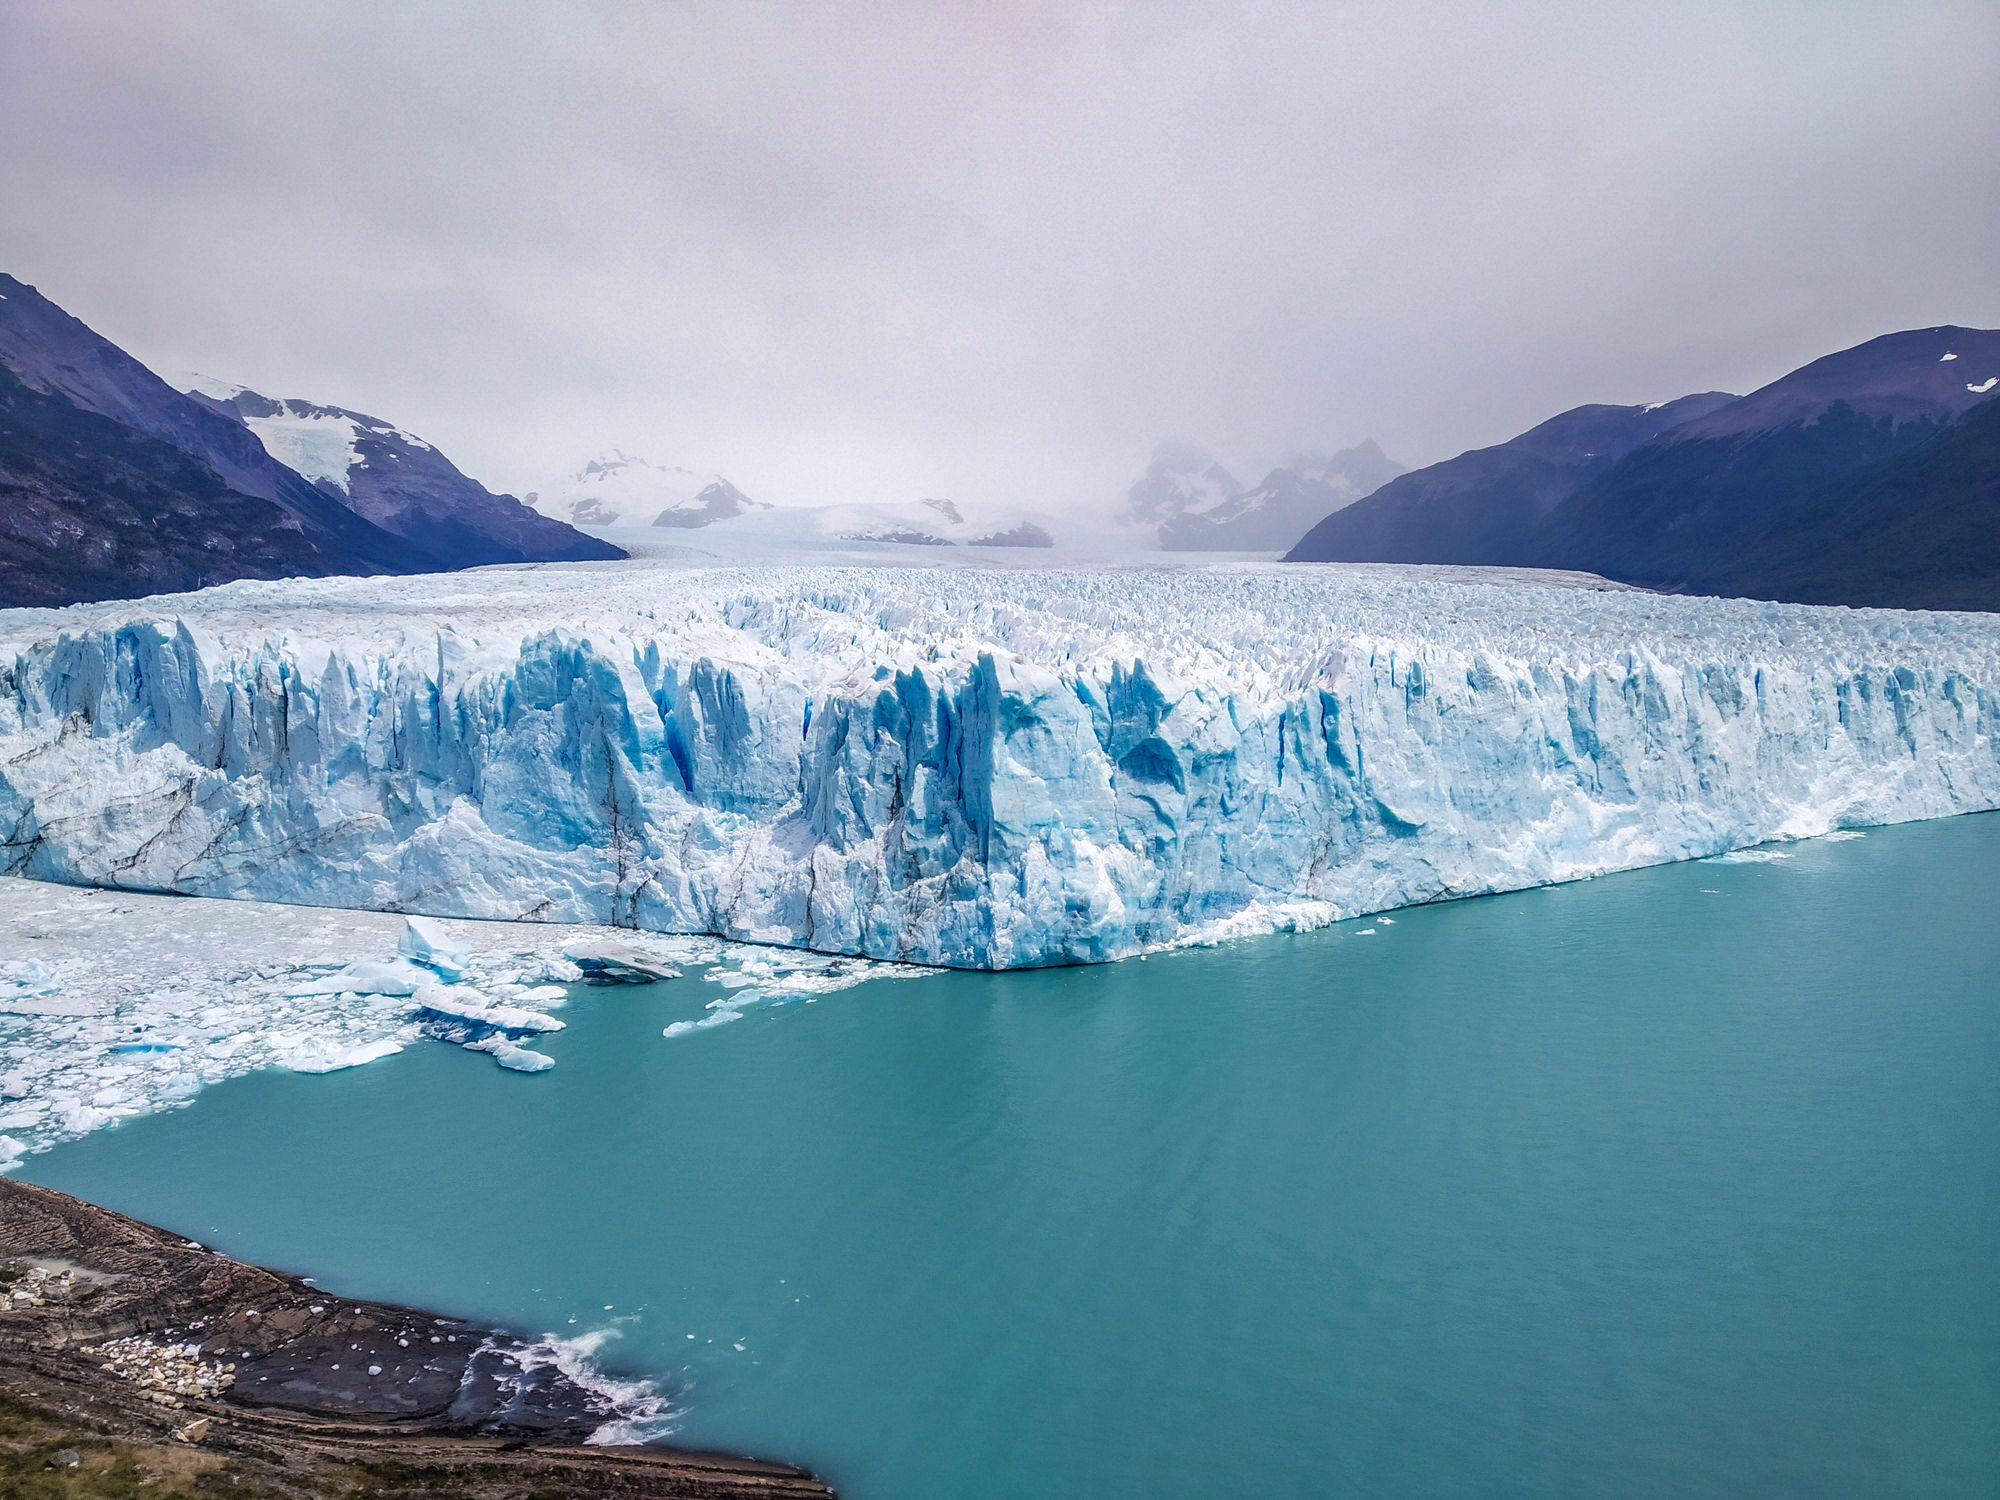 The ice kingdom of Perito Moreno in Patagonia, Argentina